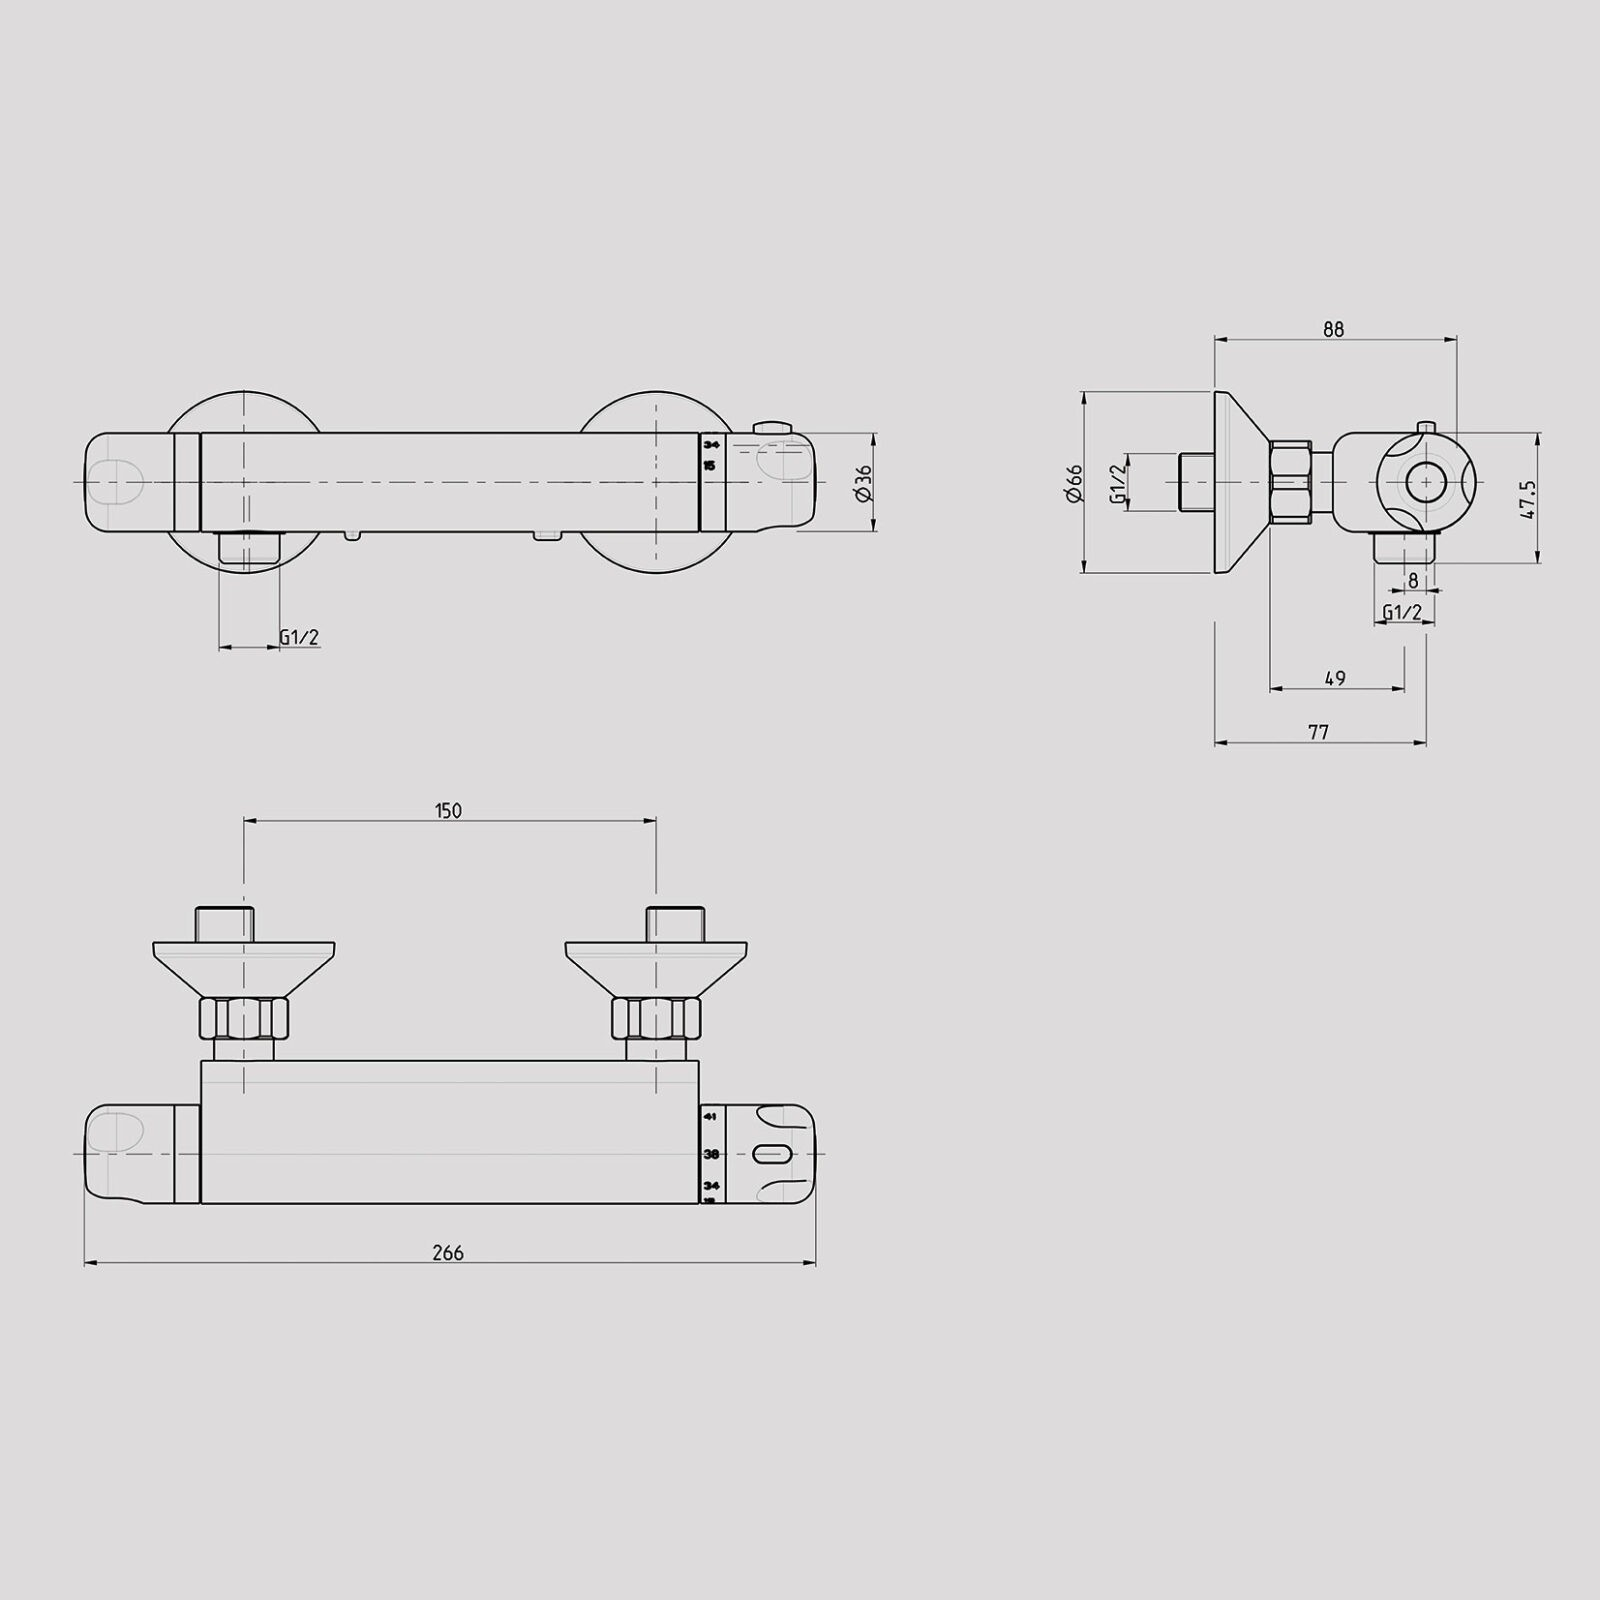 Exposed Wall Mounted Thermostatic Bar Shower Valve Inver Bathrooms Diagram